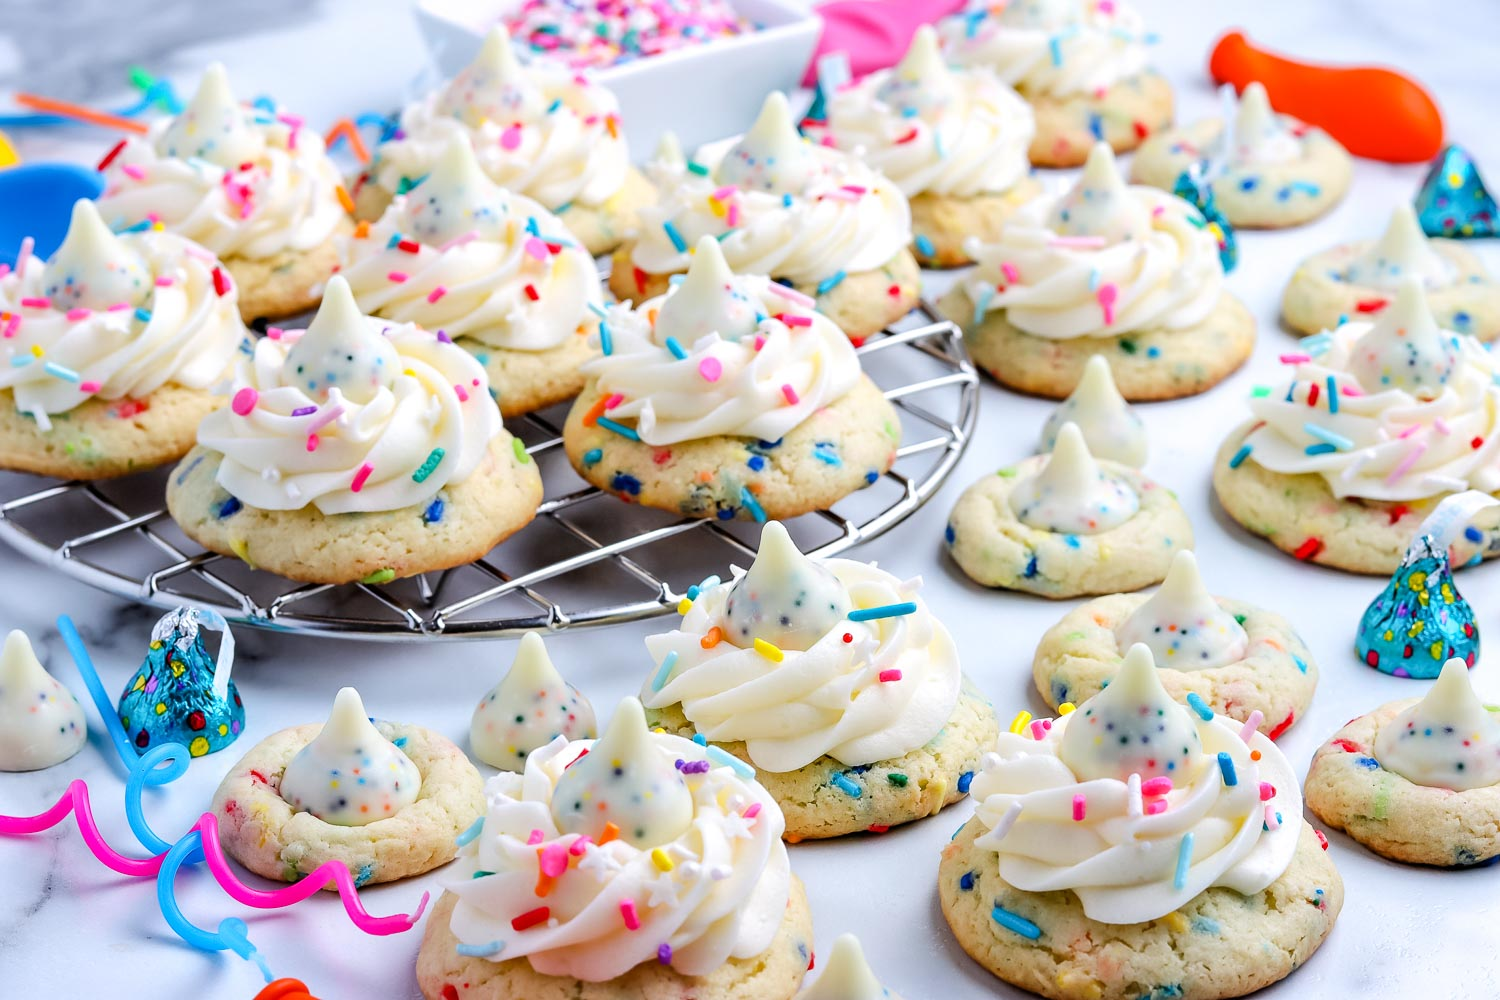 The finished Birthday Cookies Recipe with candles and sprinkles.